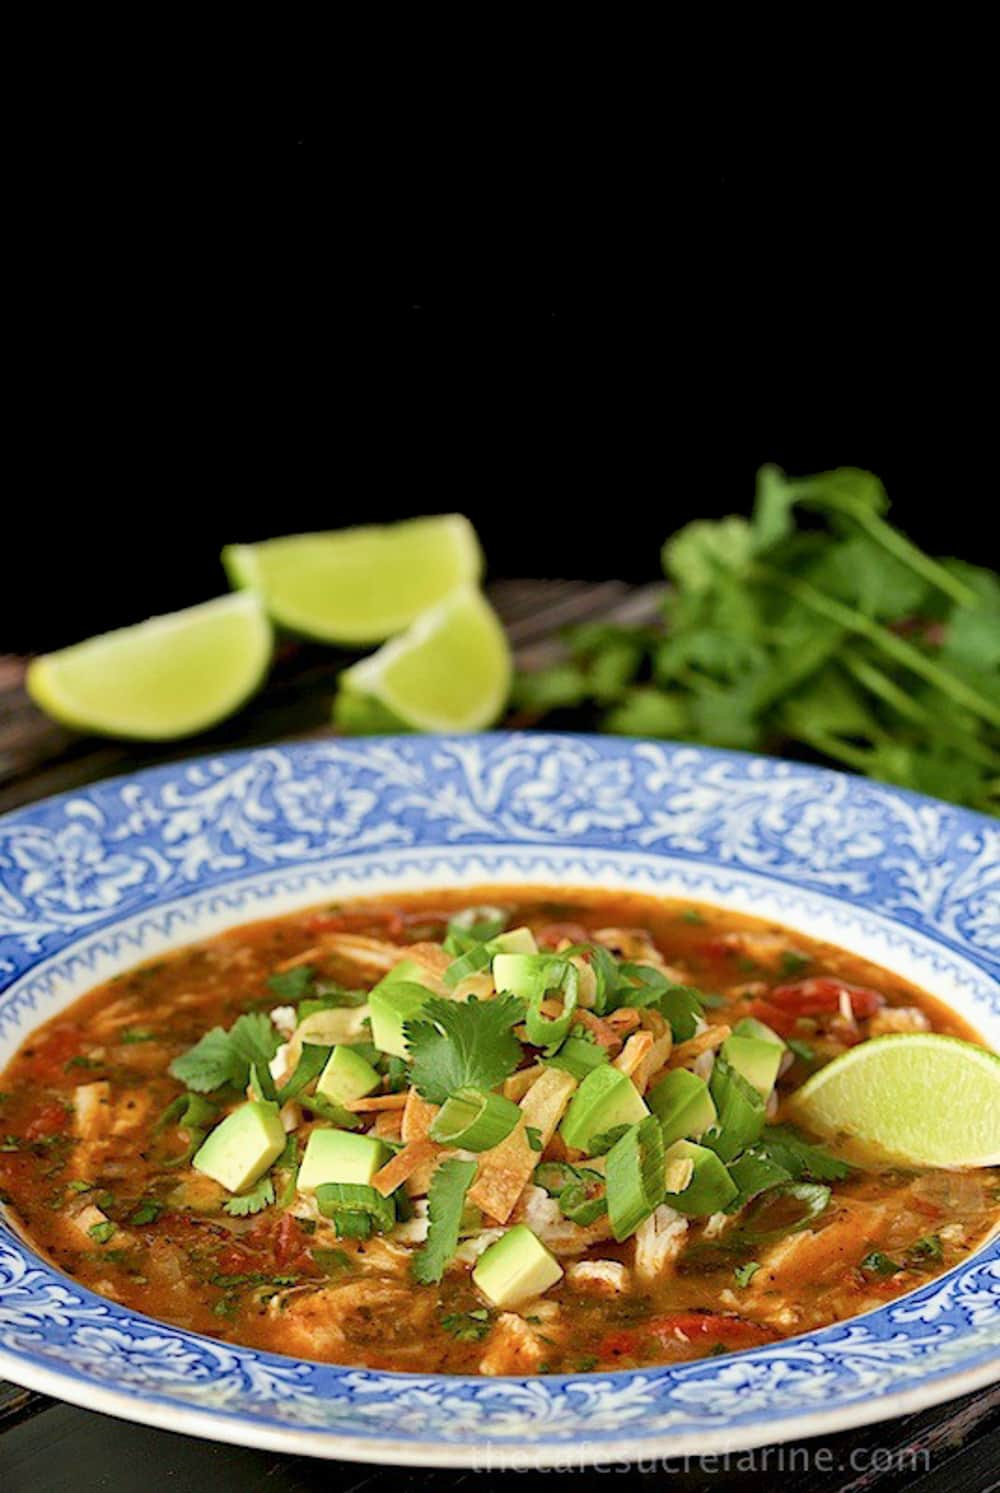 Vertical picture of turkey tortilla soup in a blue and white bowl on a black background